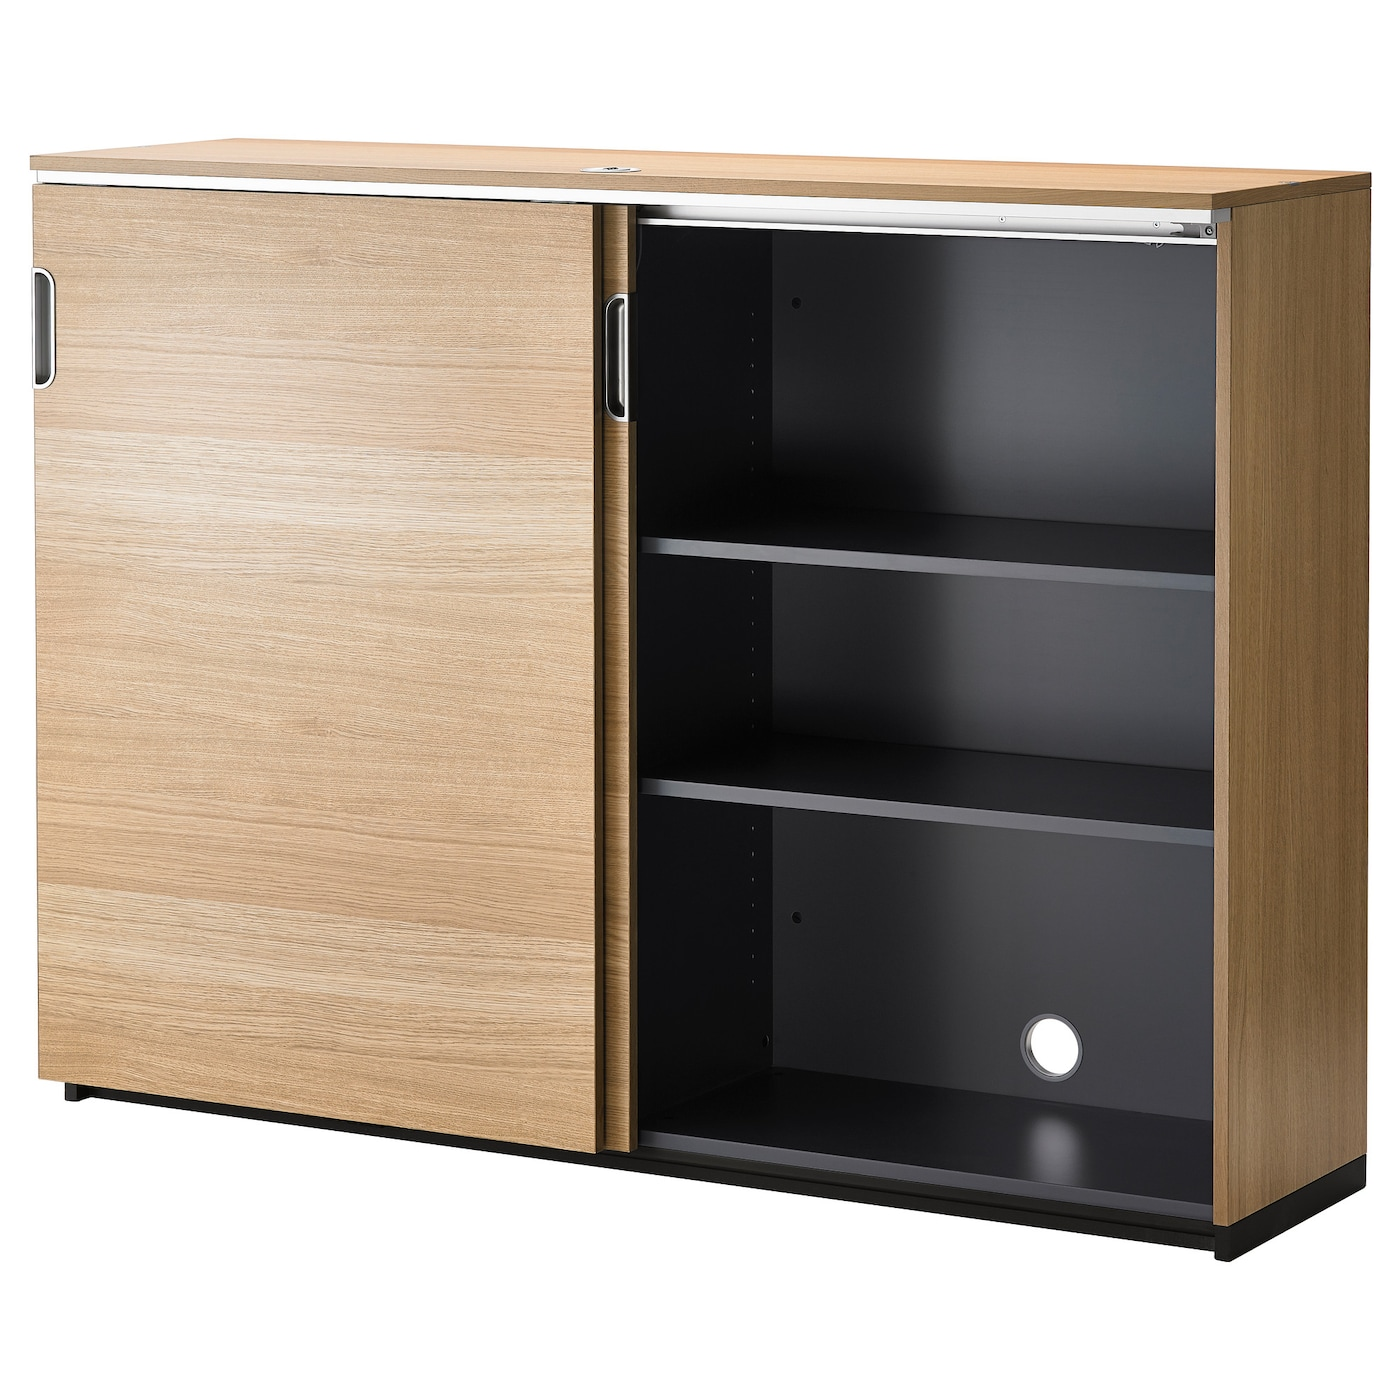 Galant cabinet with sliding doors oak veneer 160x120 cm ikea - Ikea cabinet doors on existing cabinets ...